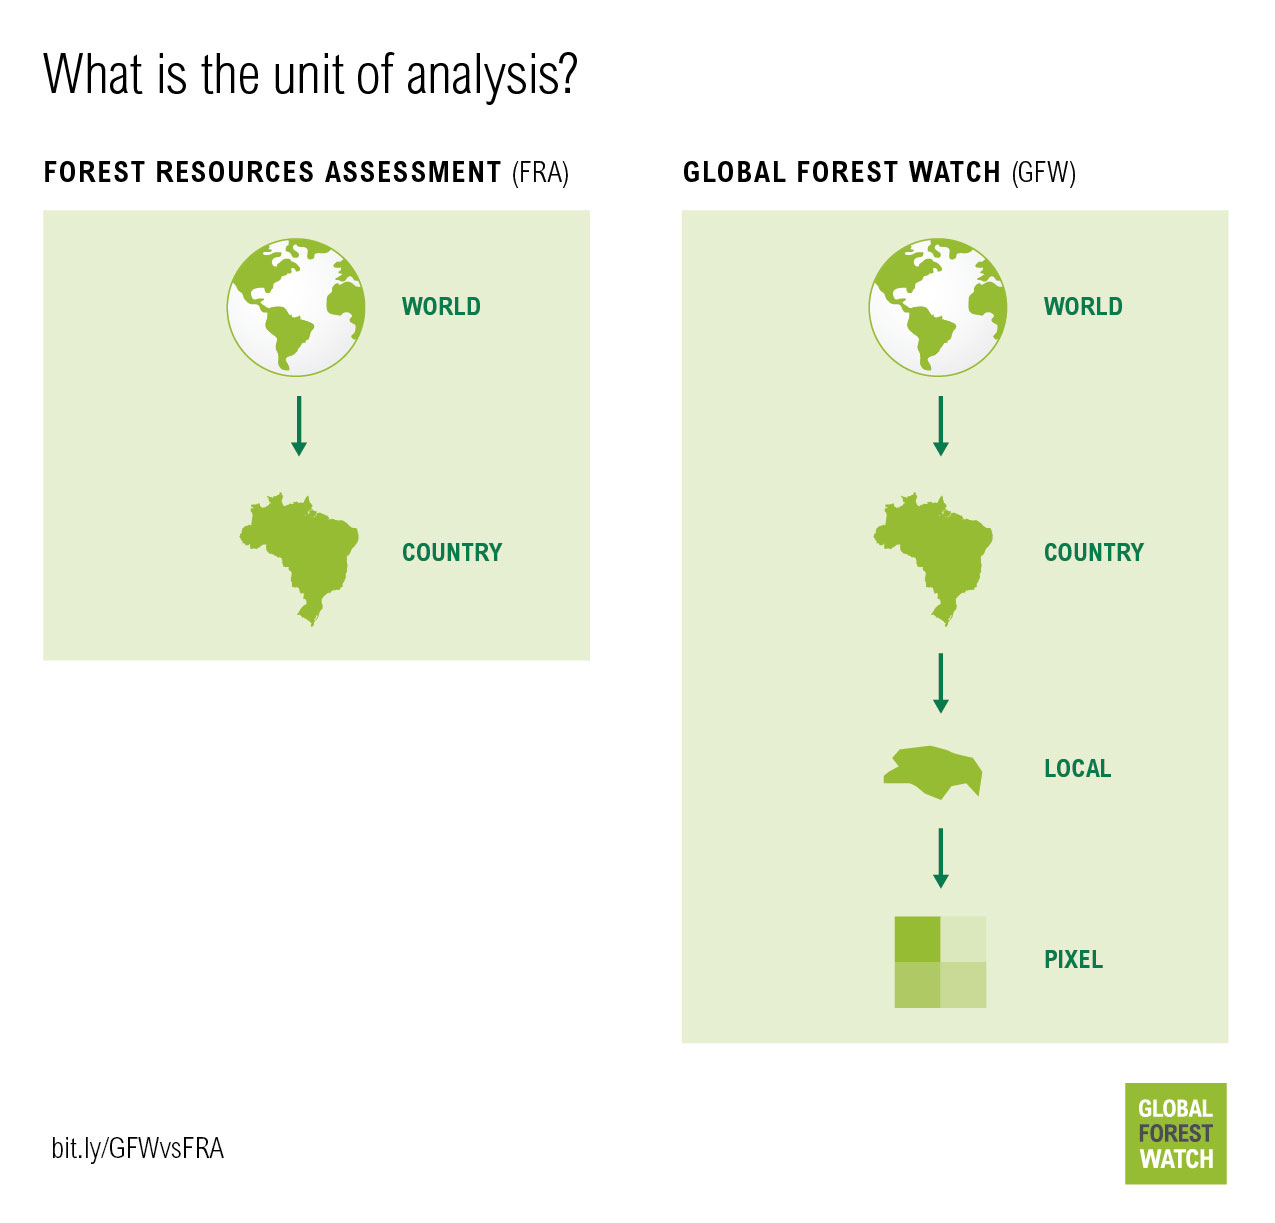 What is the unit of analysis for GFW vs FRA?